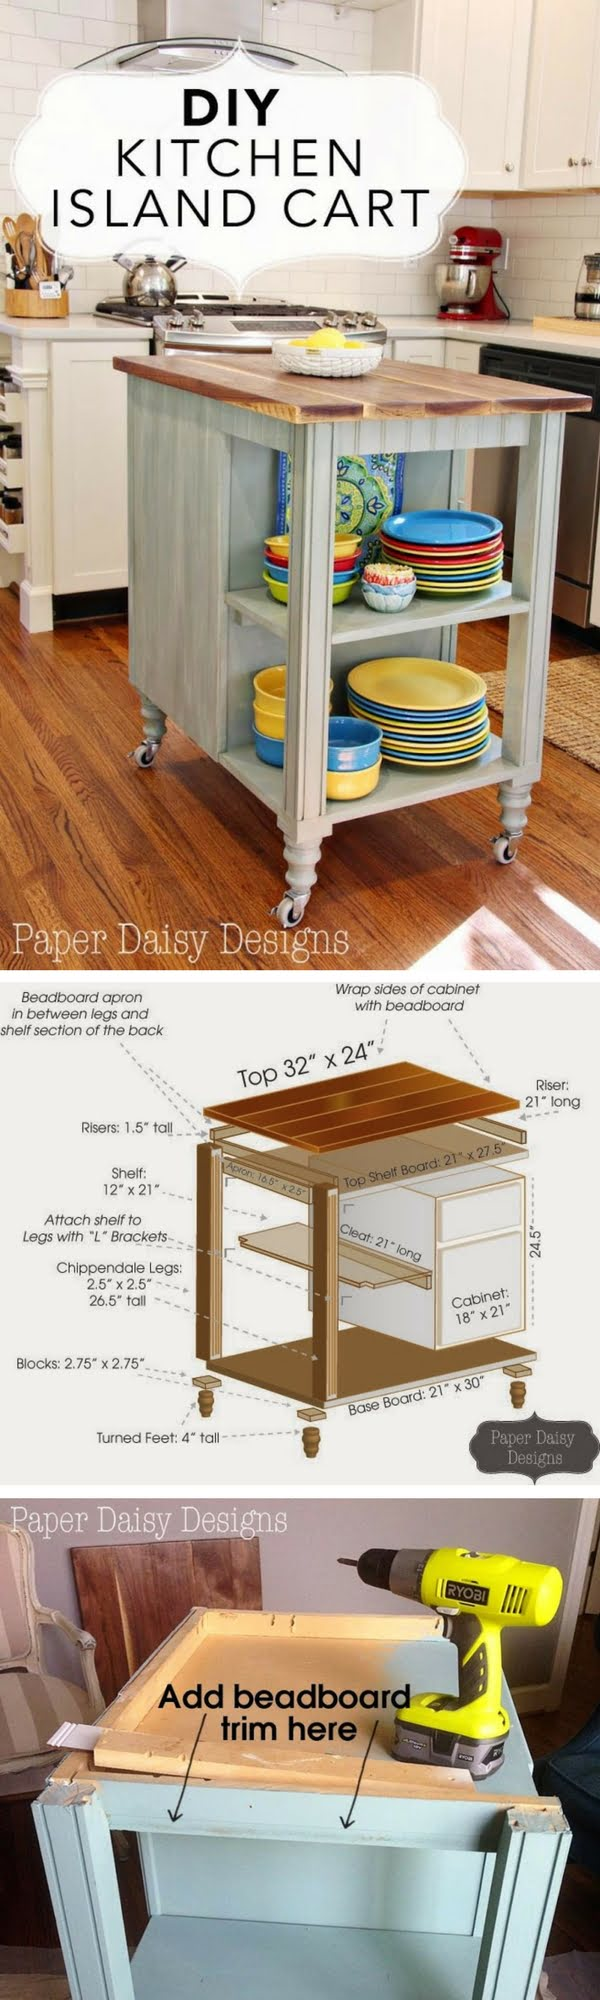 25 Easy DIY Kitchen Island Ideas That You Can Build on a Budget - Check out the tutorial on how to build a DIY kitchen island cart